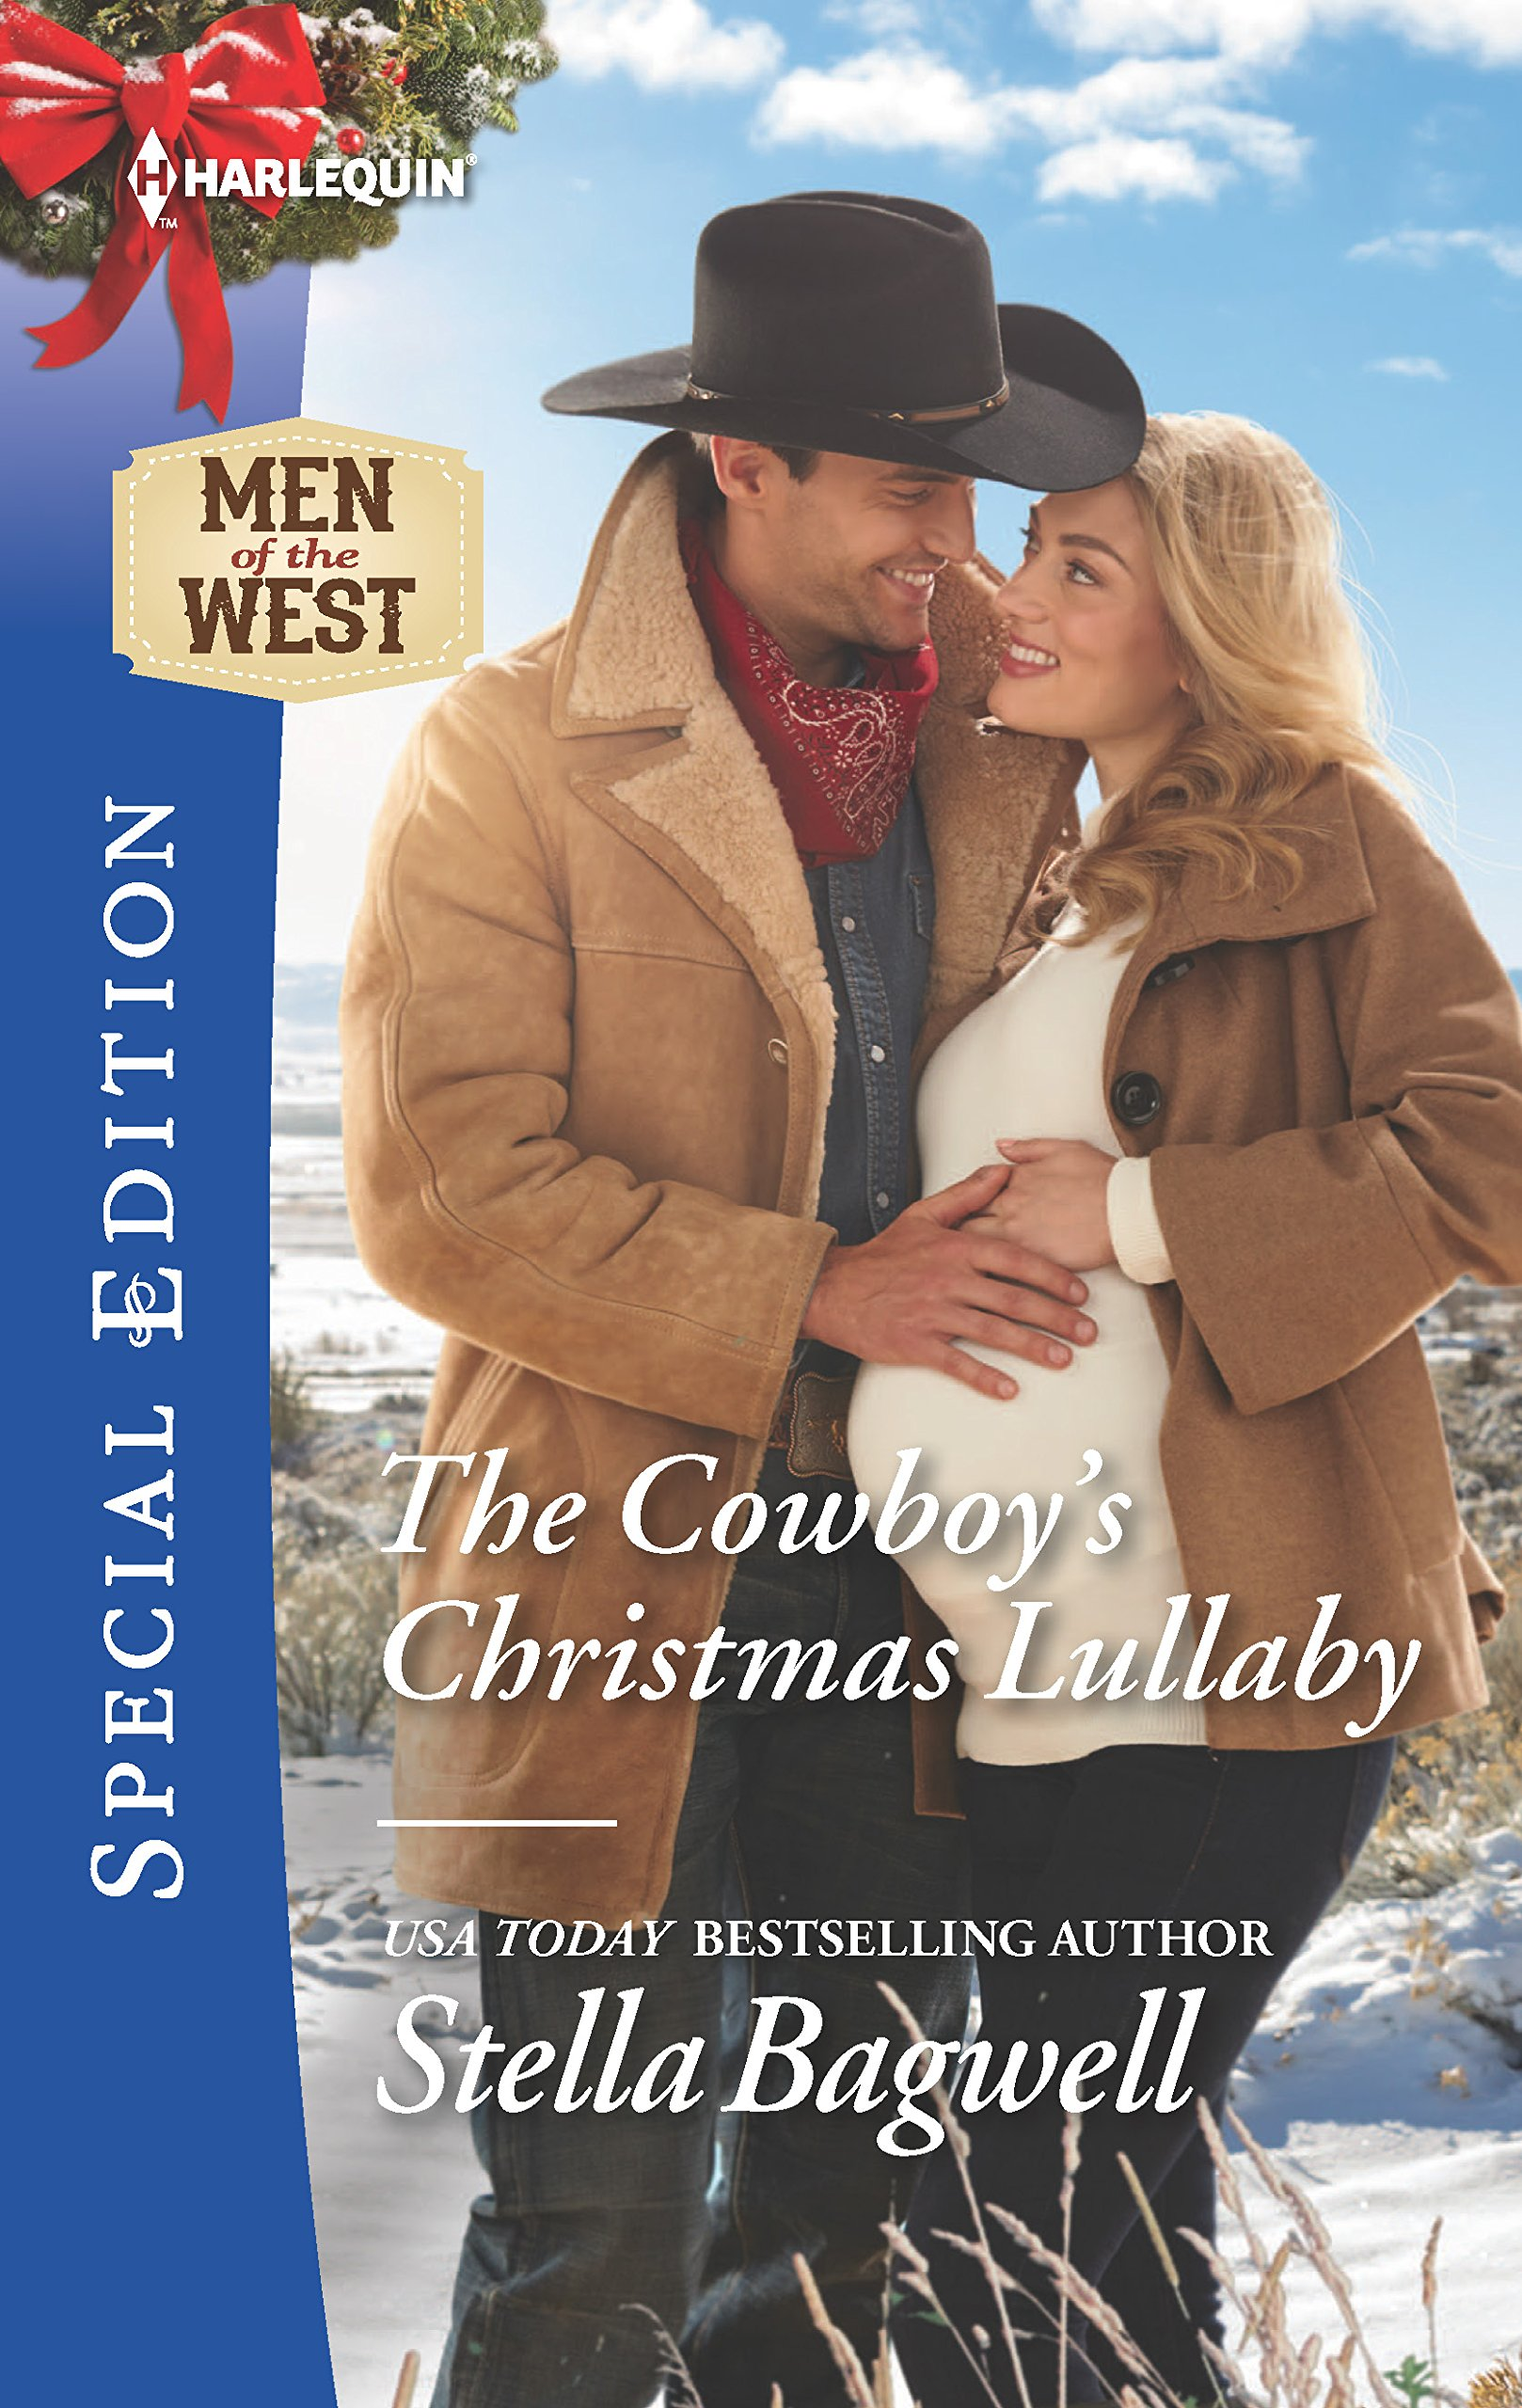 Download The Cowboy's Christmas Lullaby (Men of the West) PDF